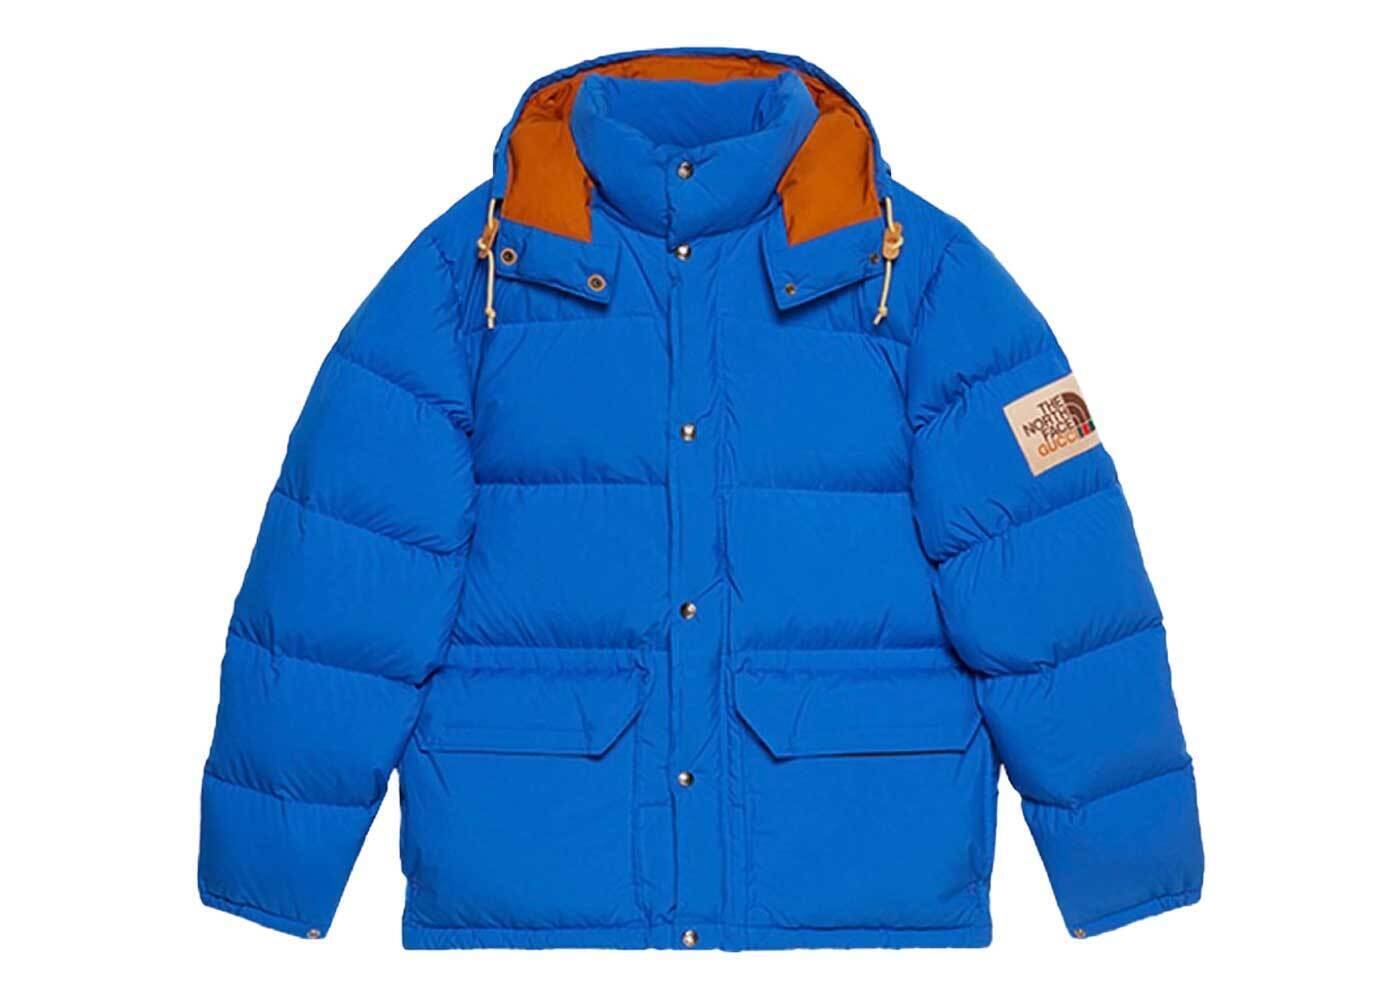 Gucci × The North Face Down Jacket Blueの写真